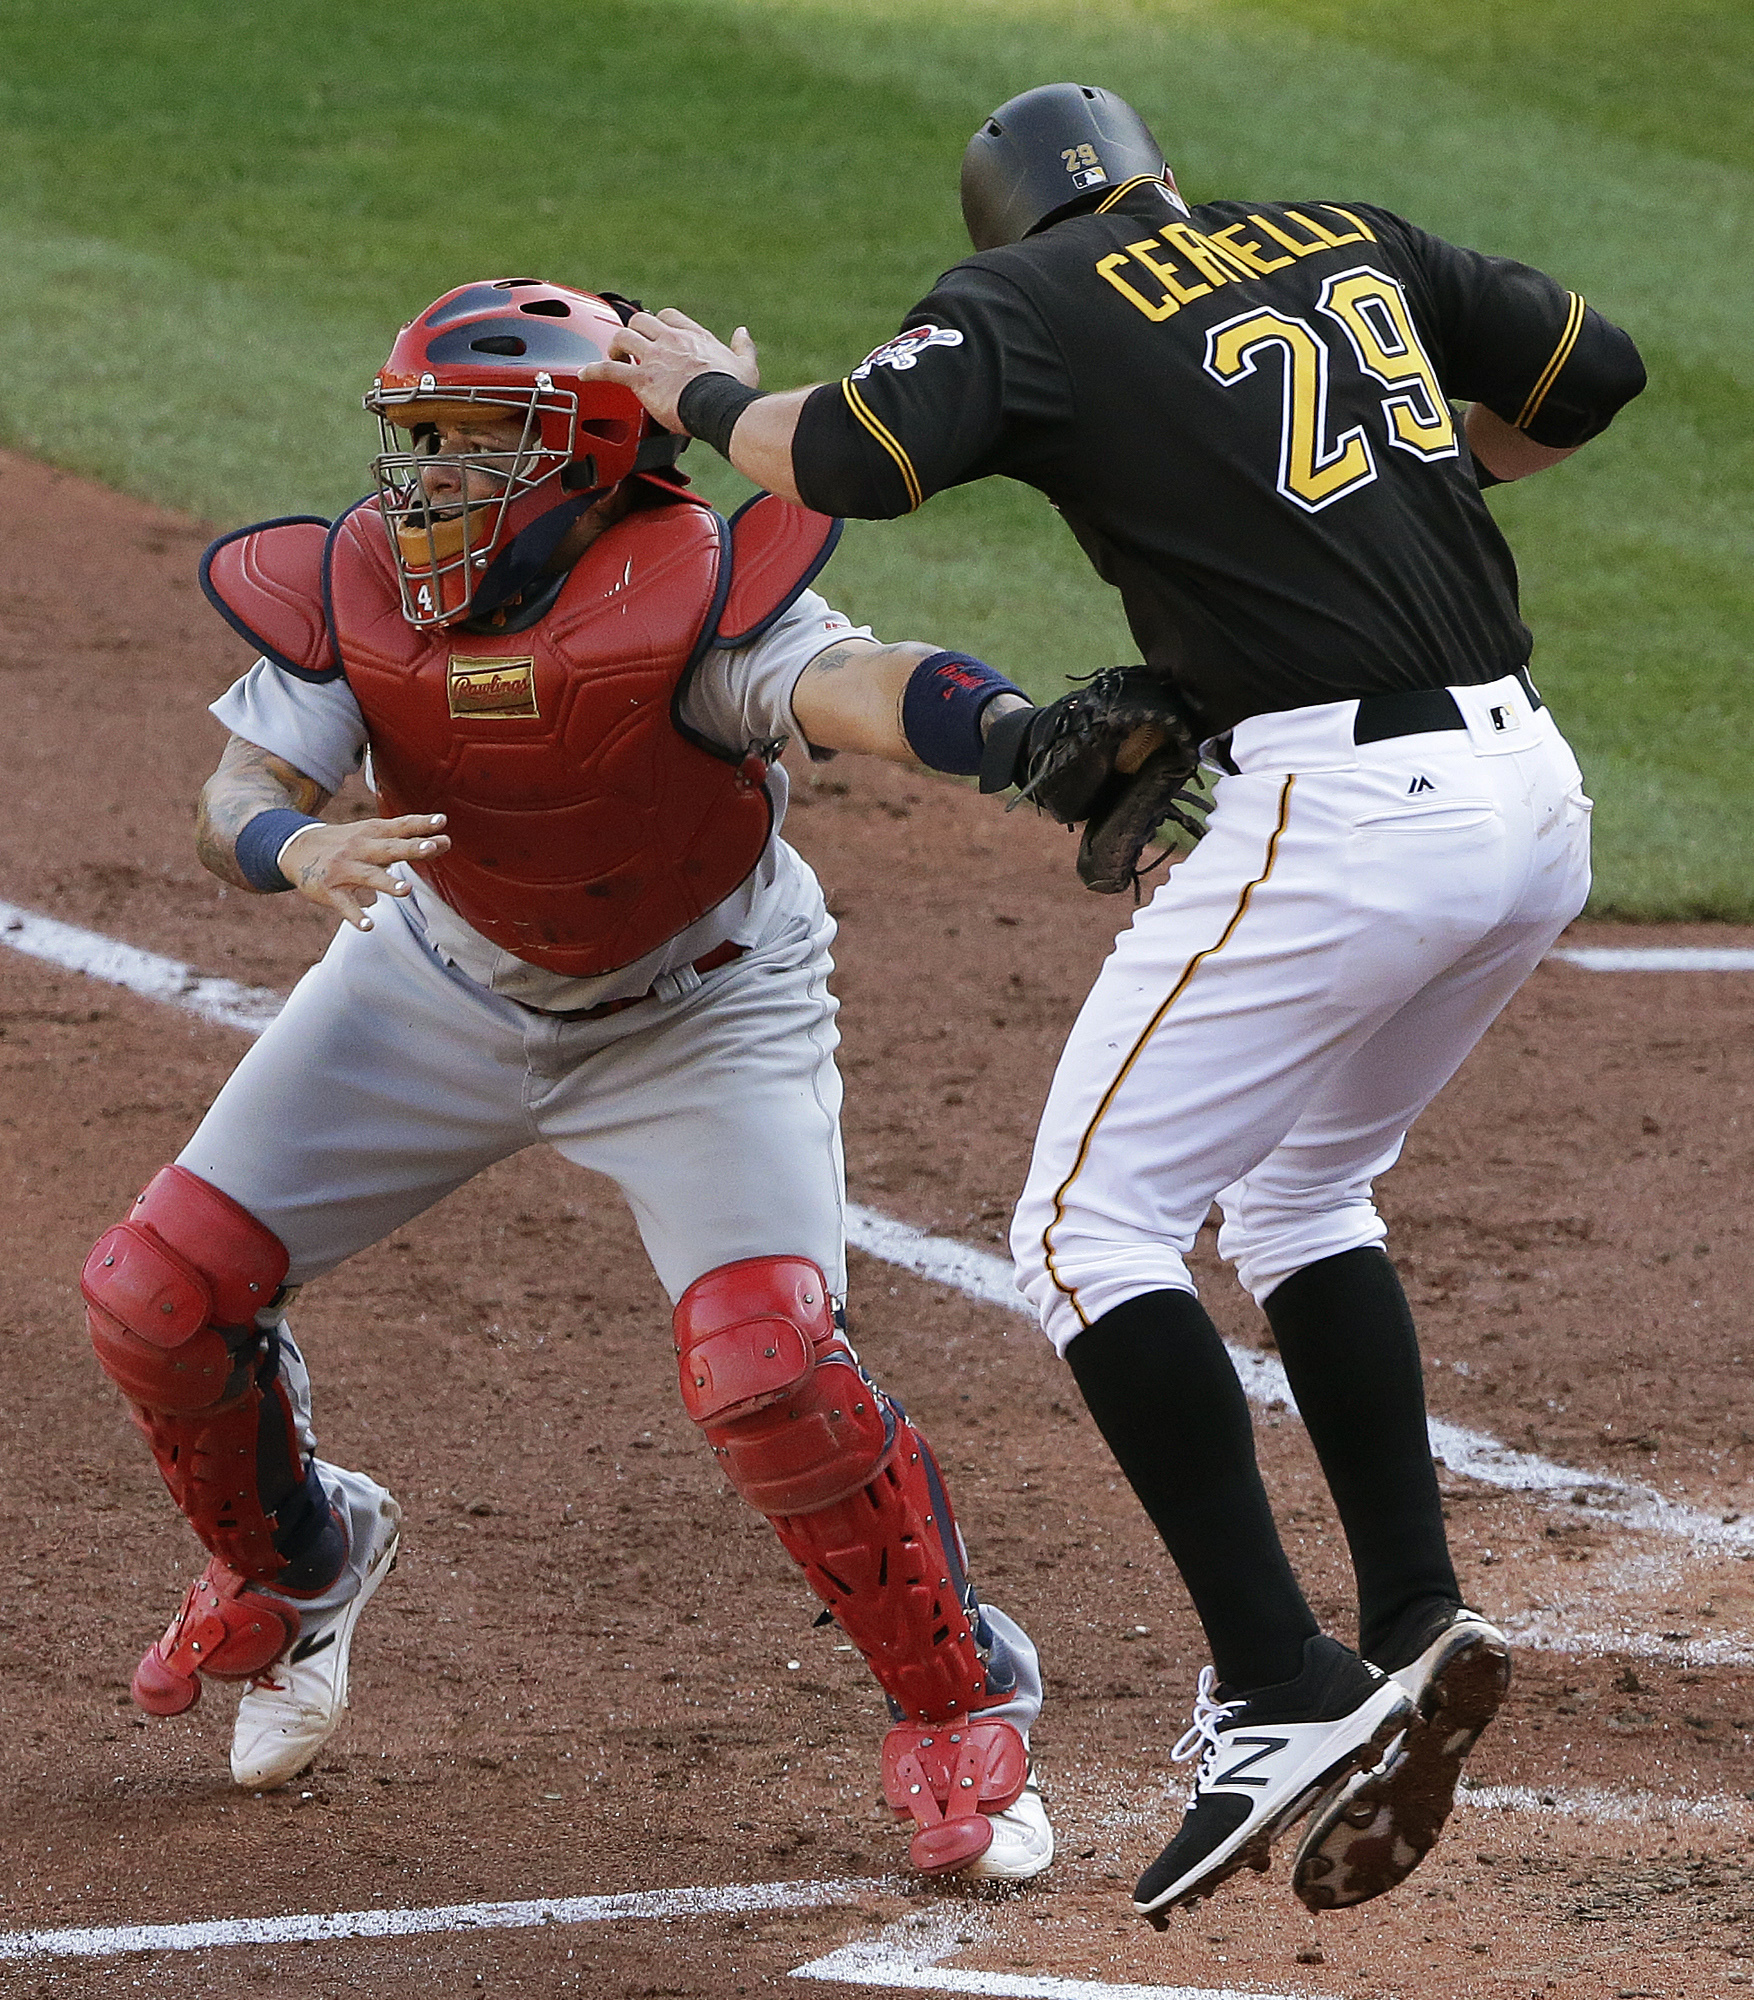 St. Louis Cardinals catcher Yadier Molina, left, tags out Pittsburgh Pirates' Francisco Cervelli, who was going on contact from third on a ground ball to third by Josh Harrison during the second inning of a baseball game in Pittsburgh, Monday, Sept. 5, 20